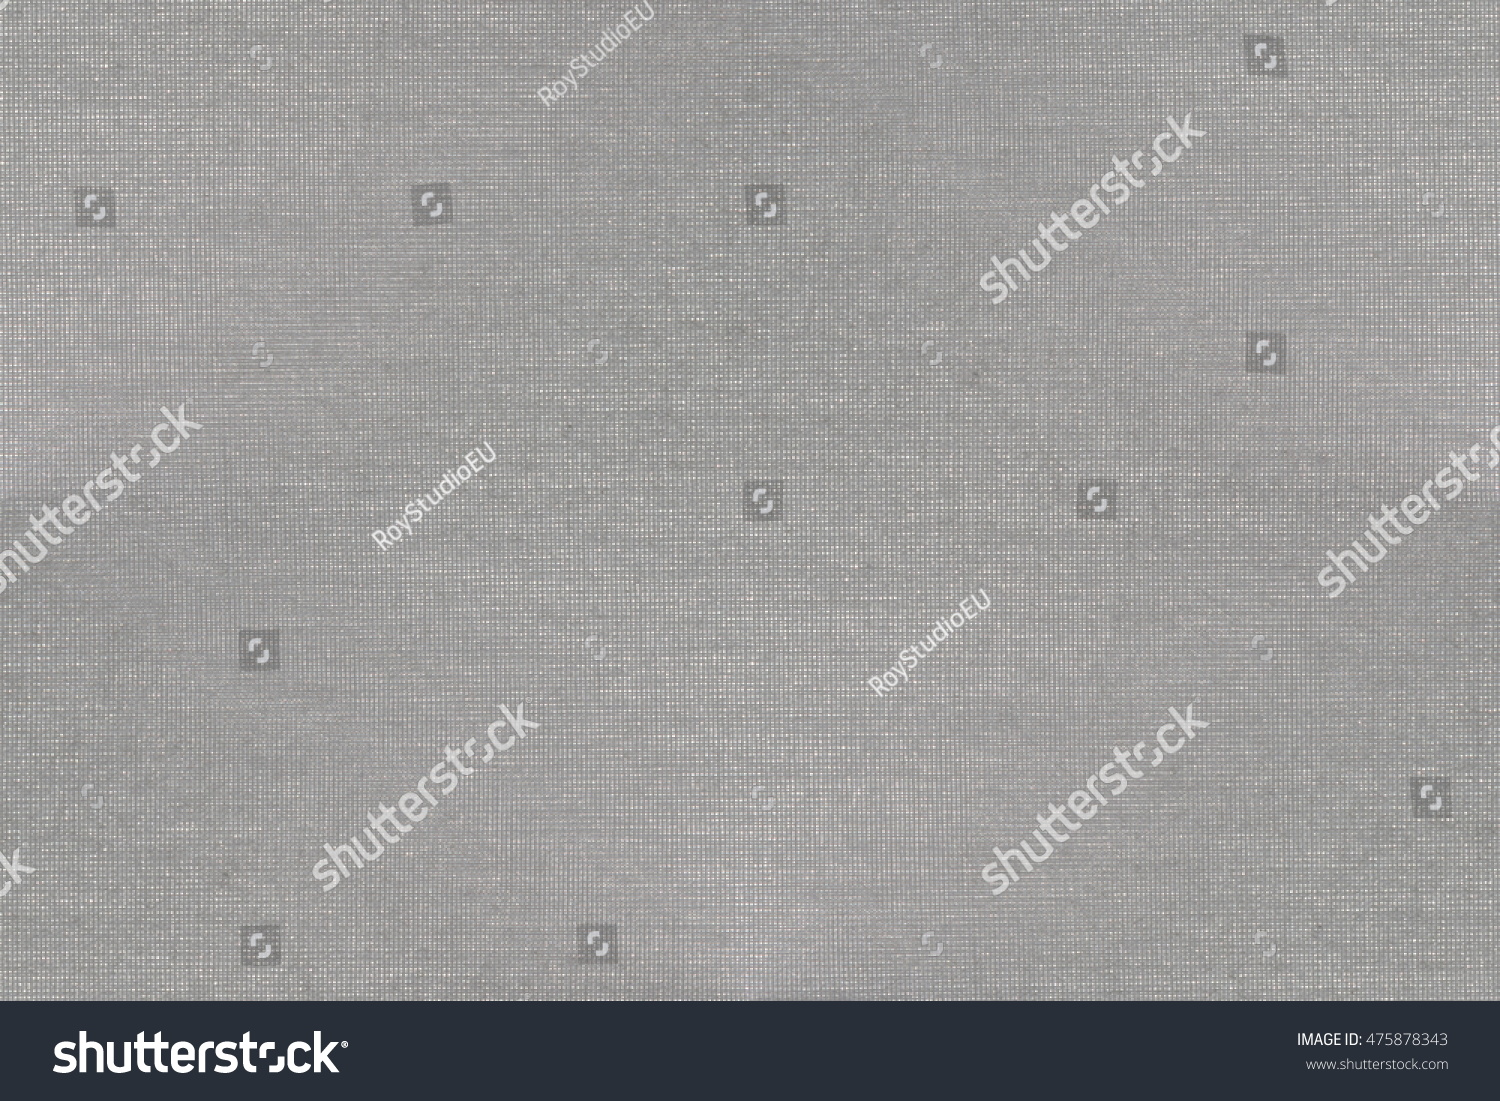 Grey Background Fabric Texture Seamless Pattern Stock Photo ... for Grey Fabric Texture Seamless  51ane